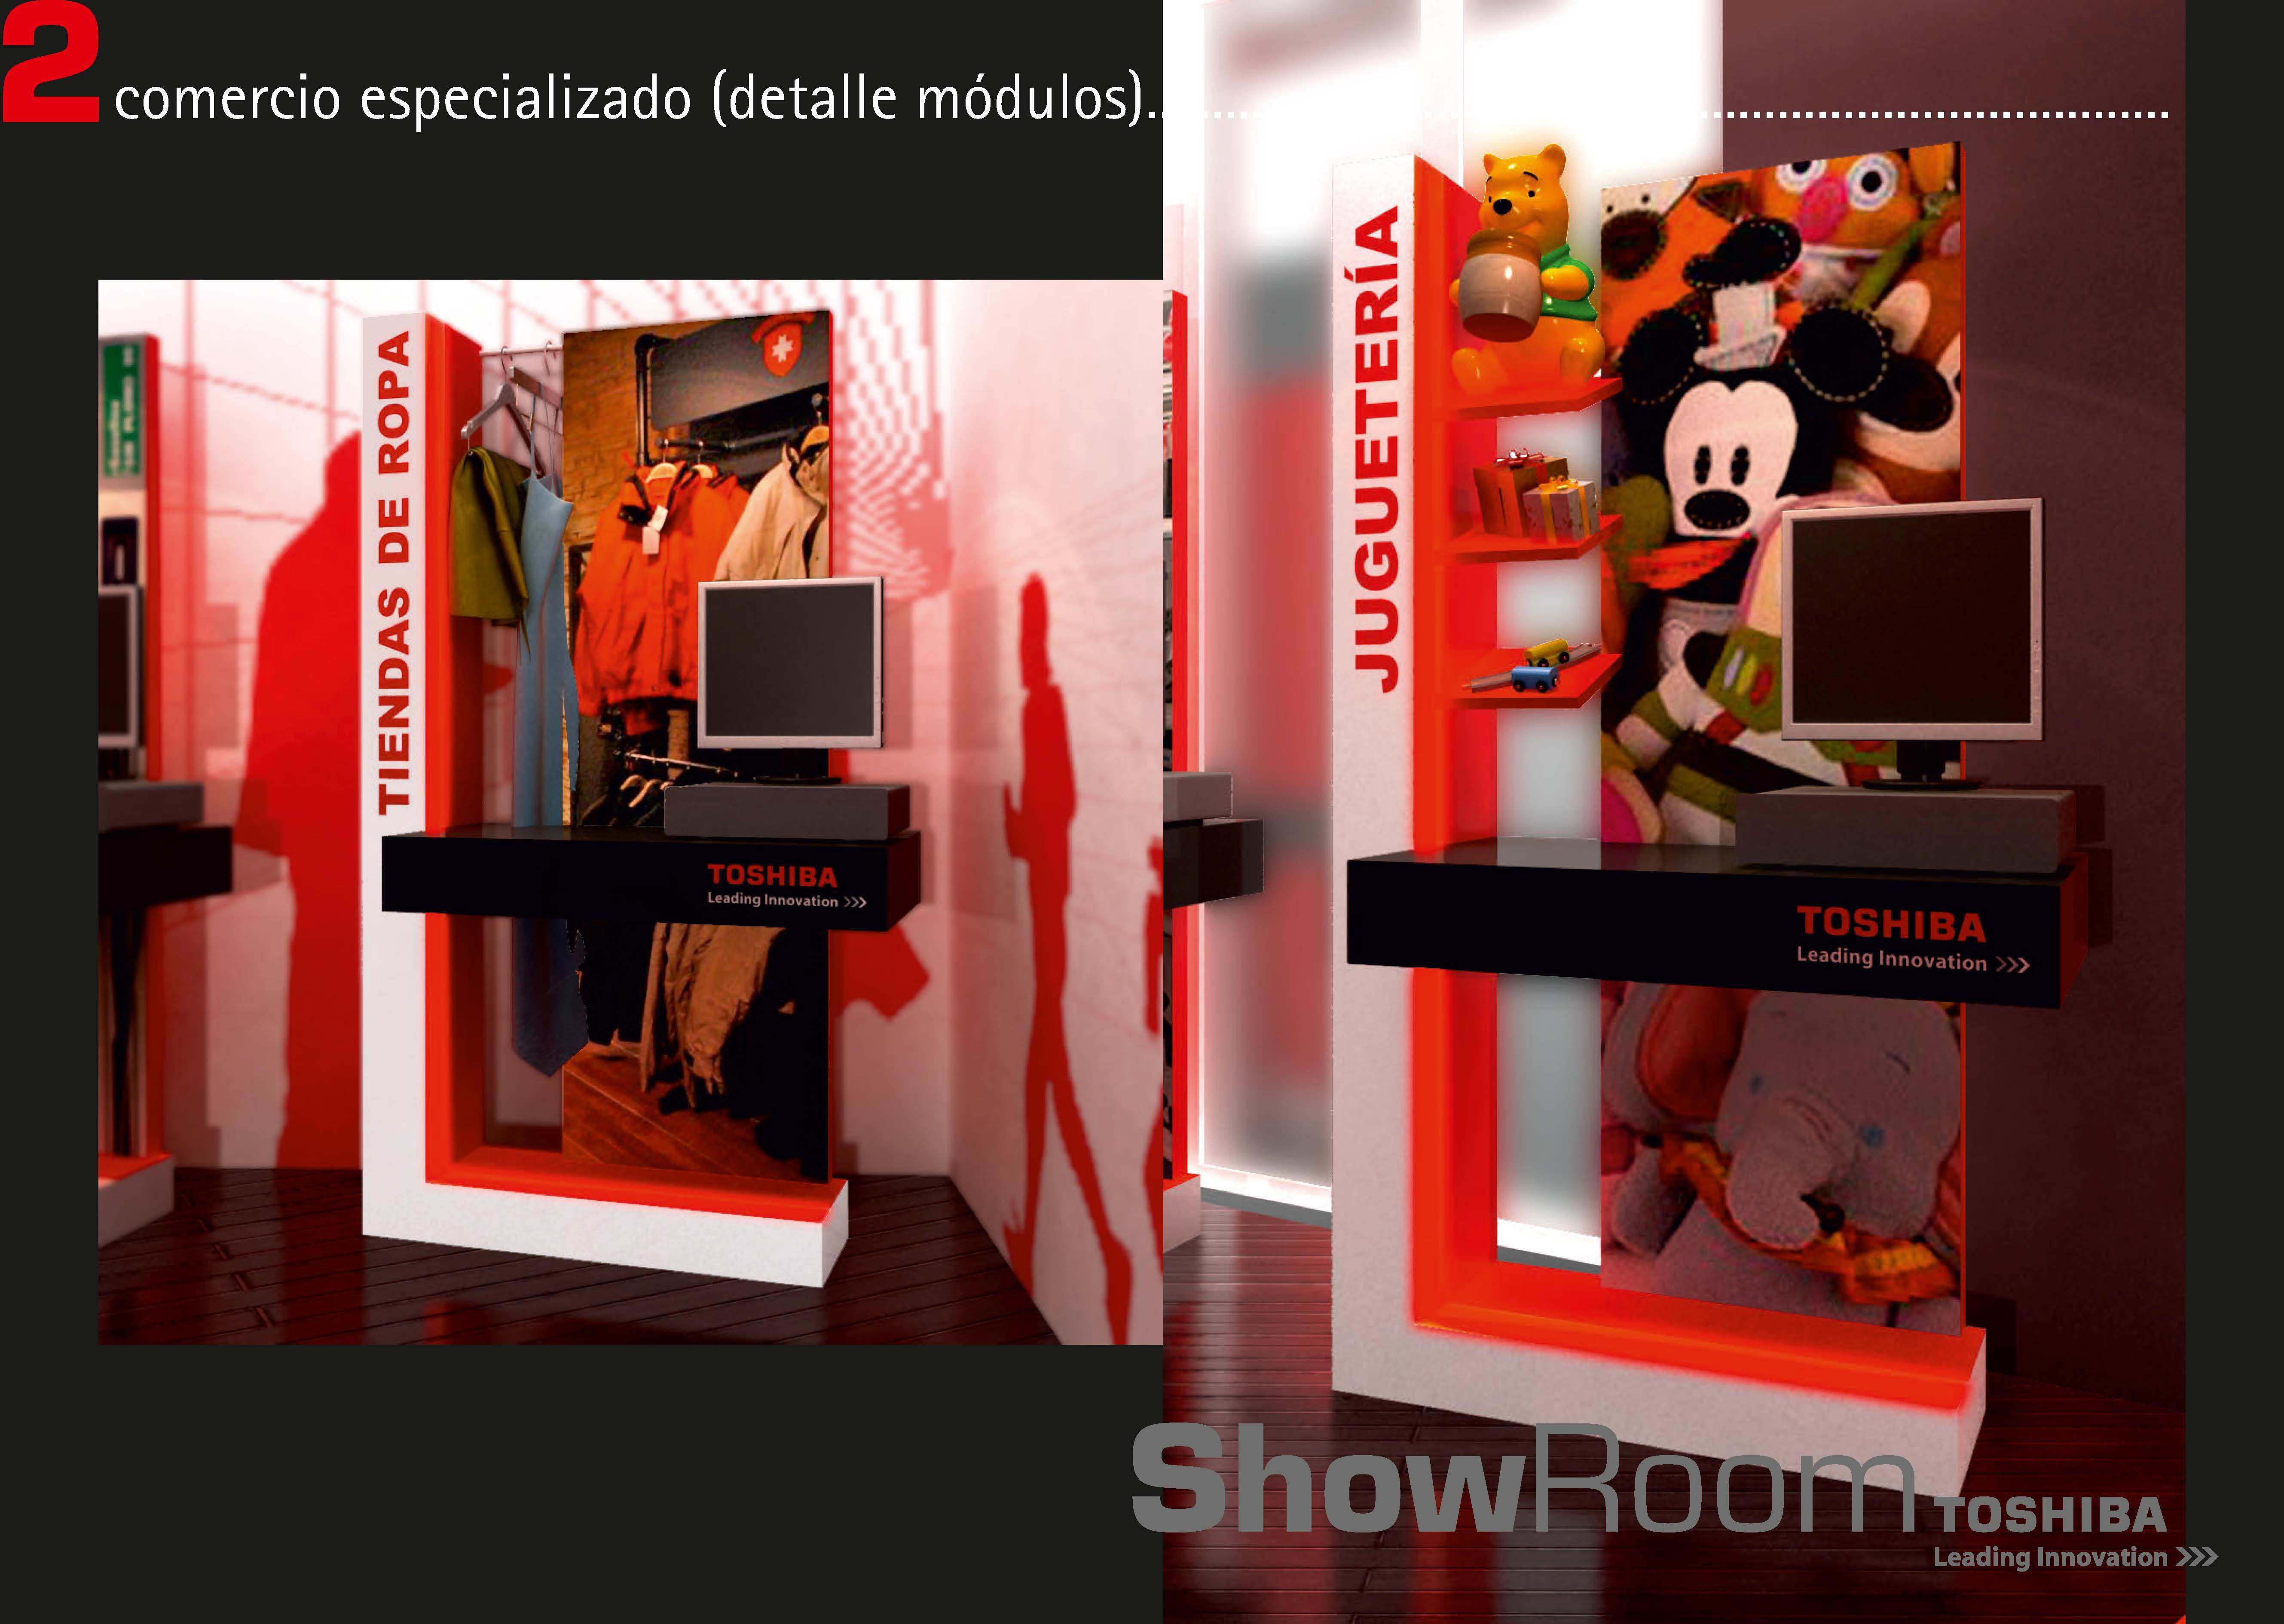 Expo TOSHIBA ShowRoom Madrid 3D (4).jpg